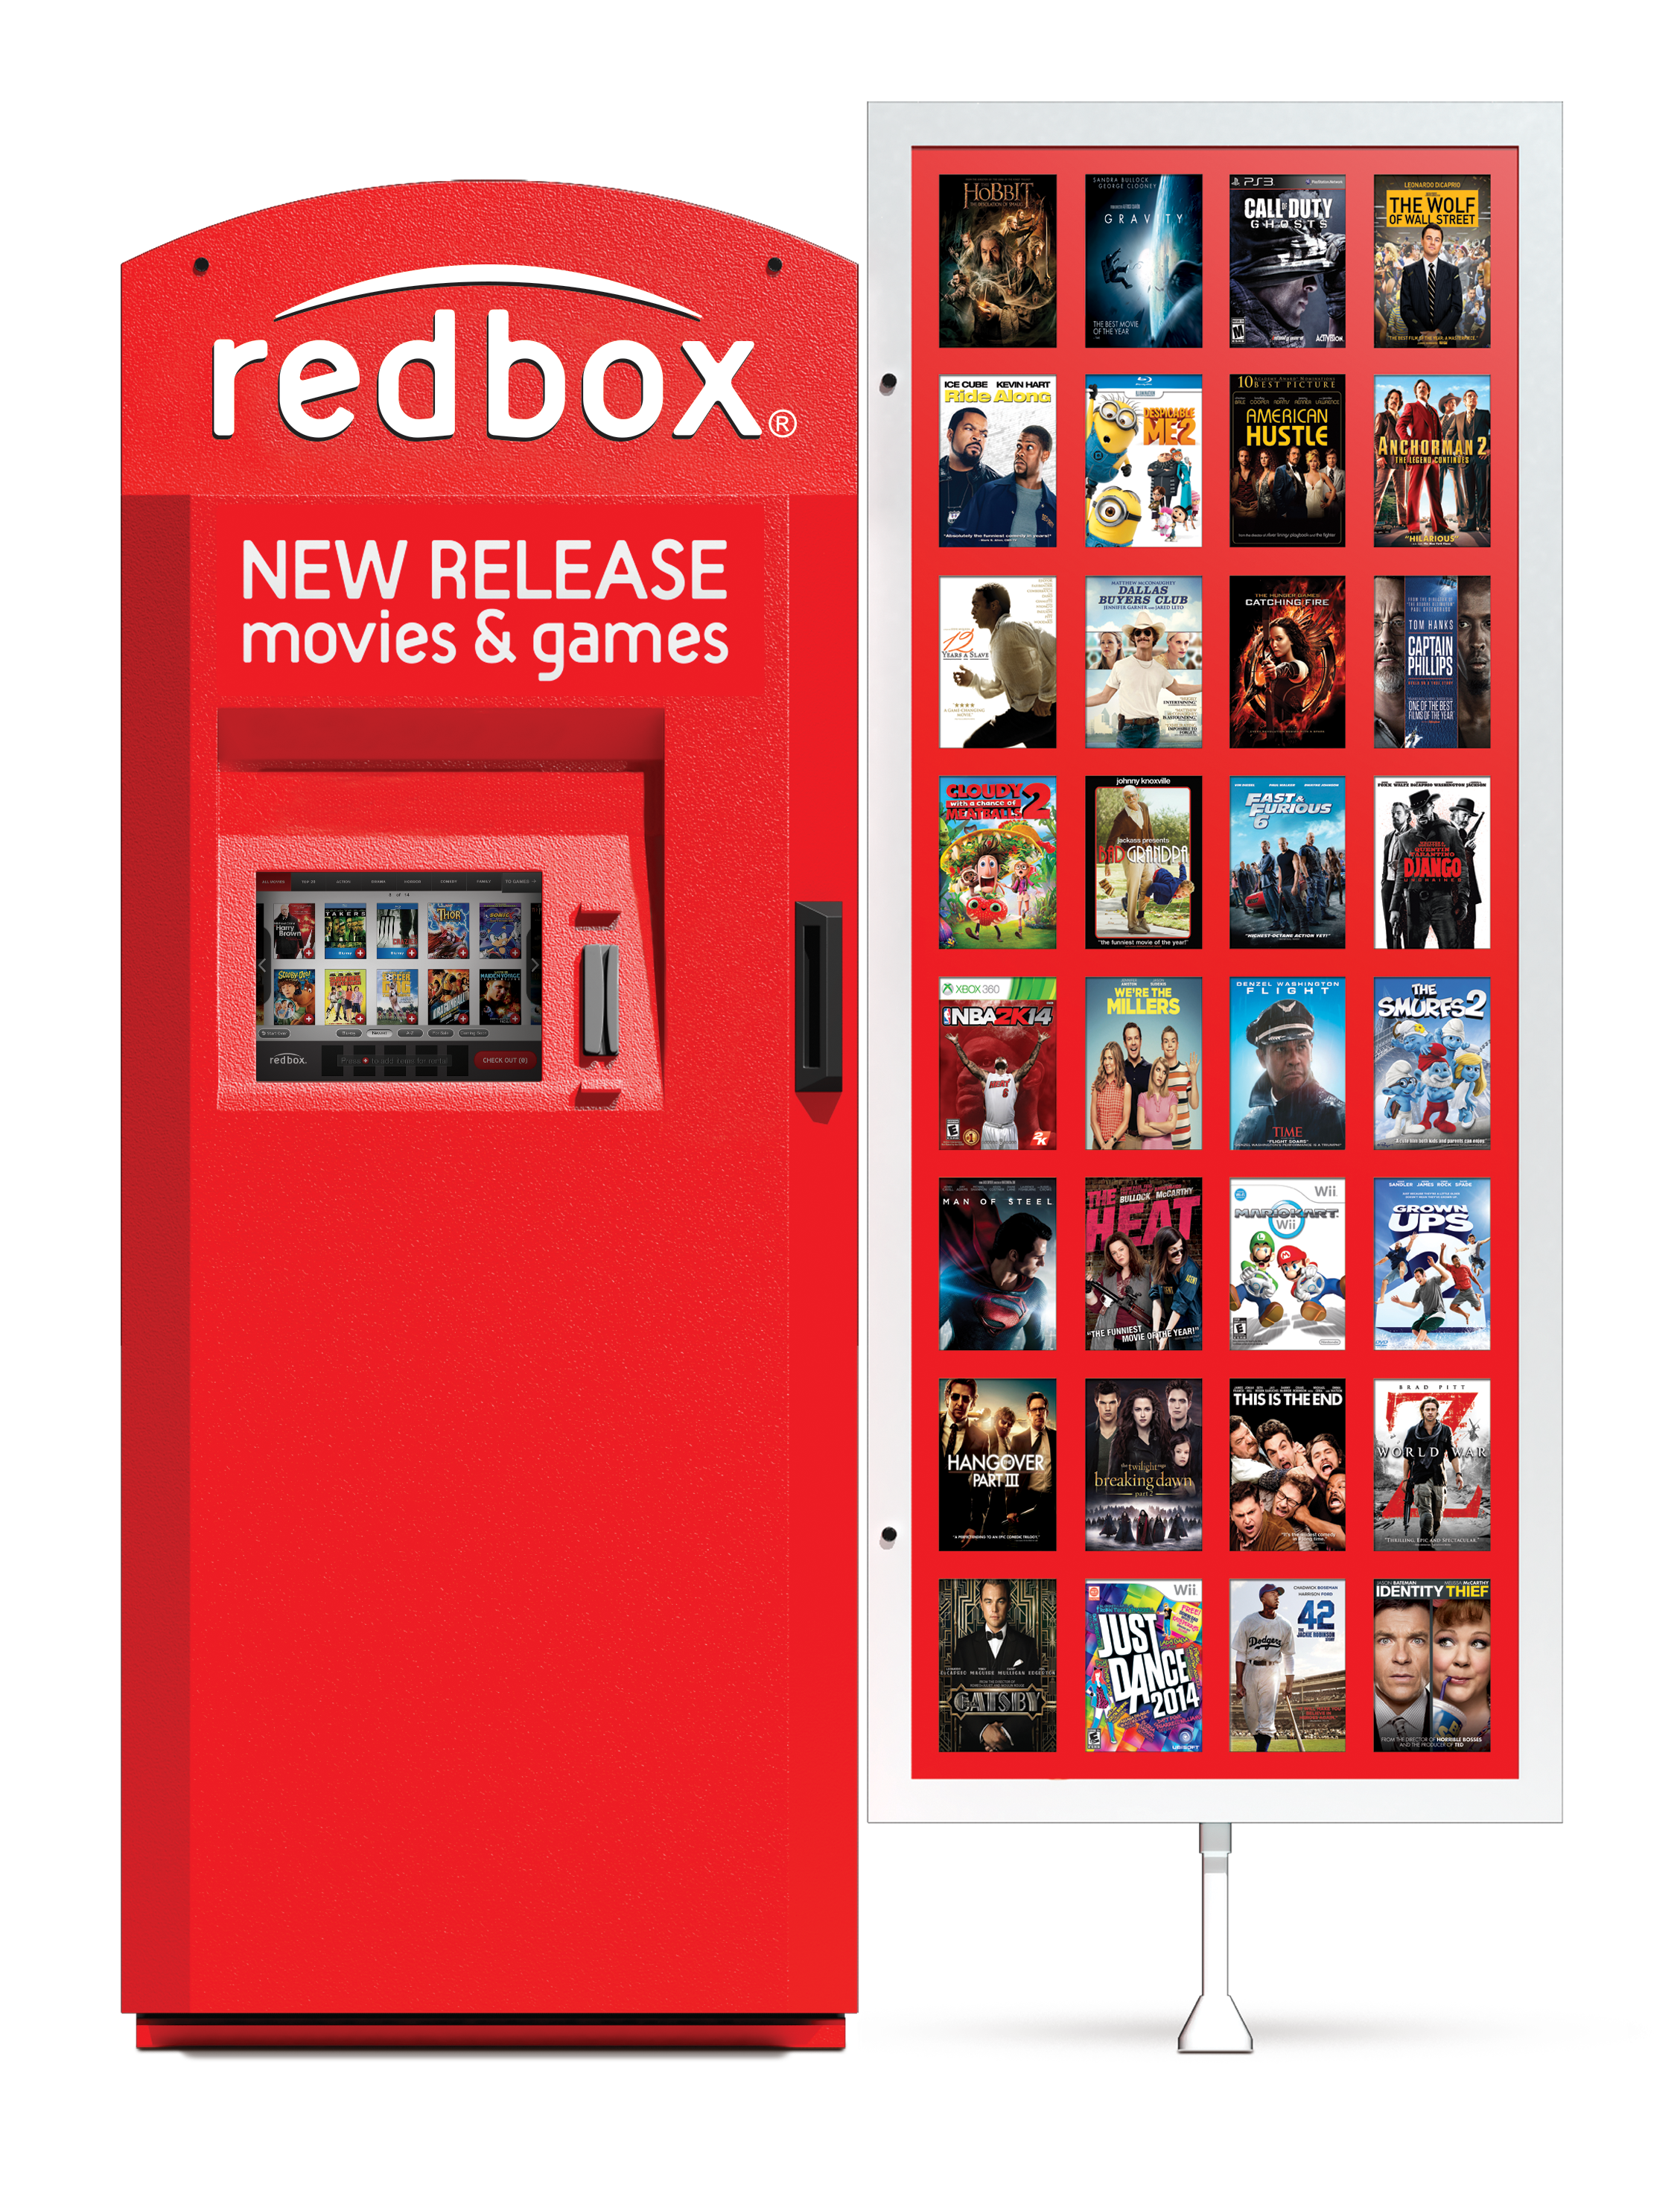 Redbox Codes. Redbox Codes. Want some FREE Redbox Codes and a FREE game code?!You can currently text GAMEKIDS to and you will get a code for a FREE 1 night game rental from Redbox!Games are normally $2 so this is a great value just don't forget to return it! 😉.